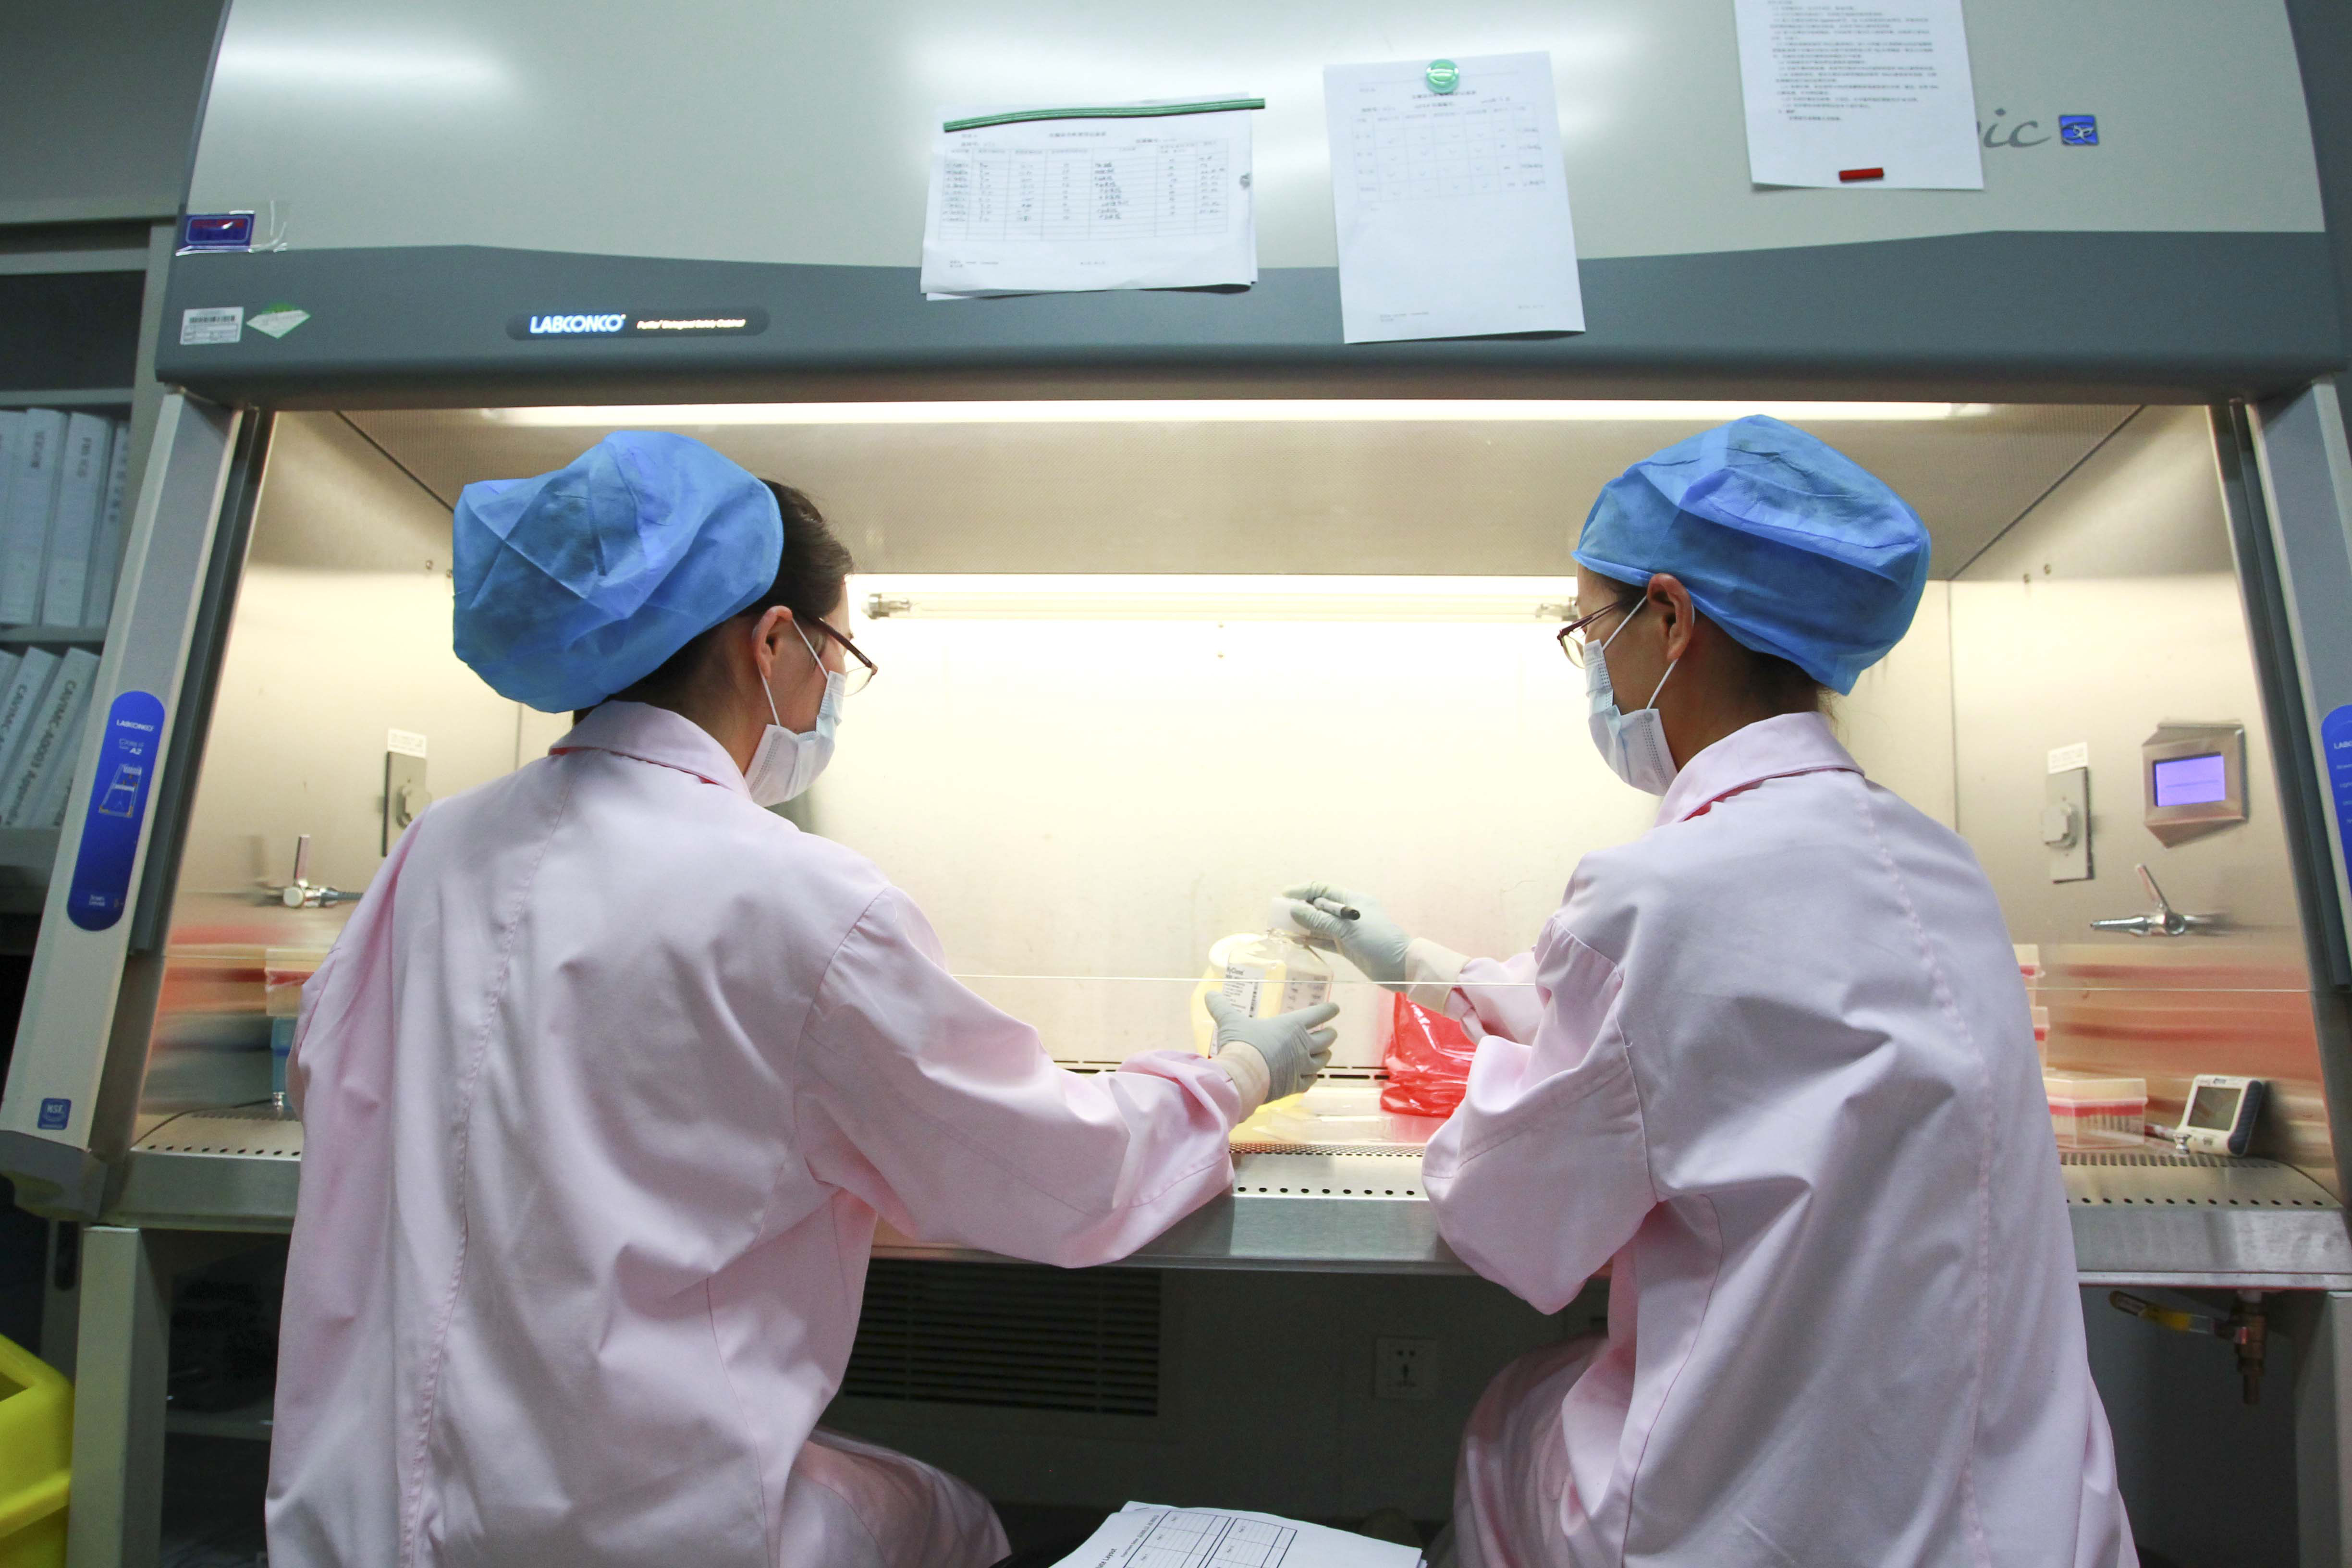 This photo taken on August 22, 2012, shows researchers working inside a laboratory of the National Center for AIDS/STD Prevention and Control (NCAIDS), a branch of the Chinese Center For Disease Control. STR/AFP/Getty Images